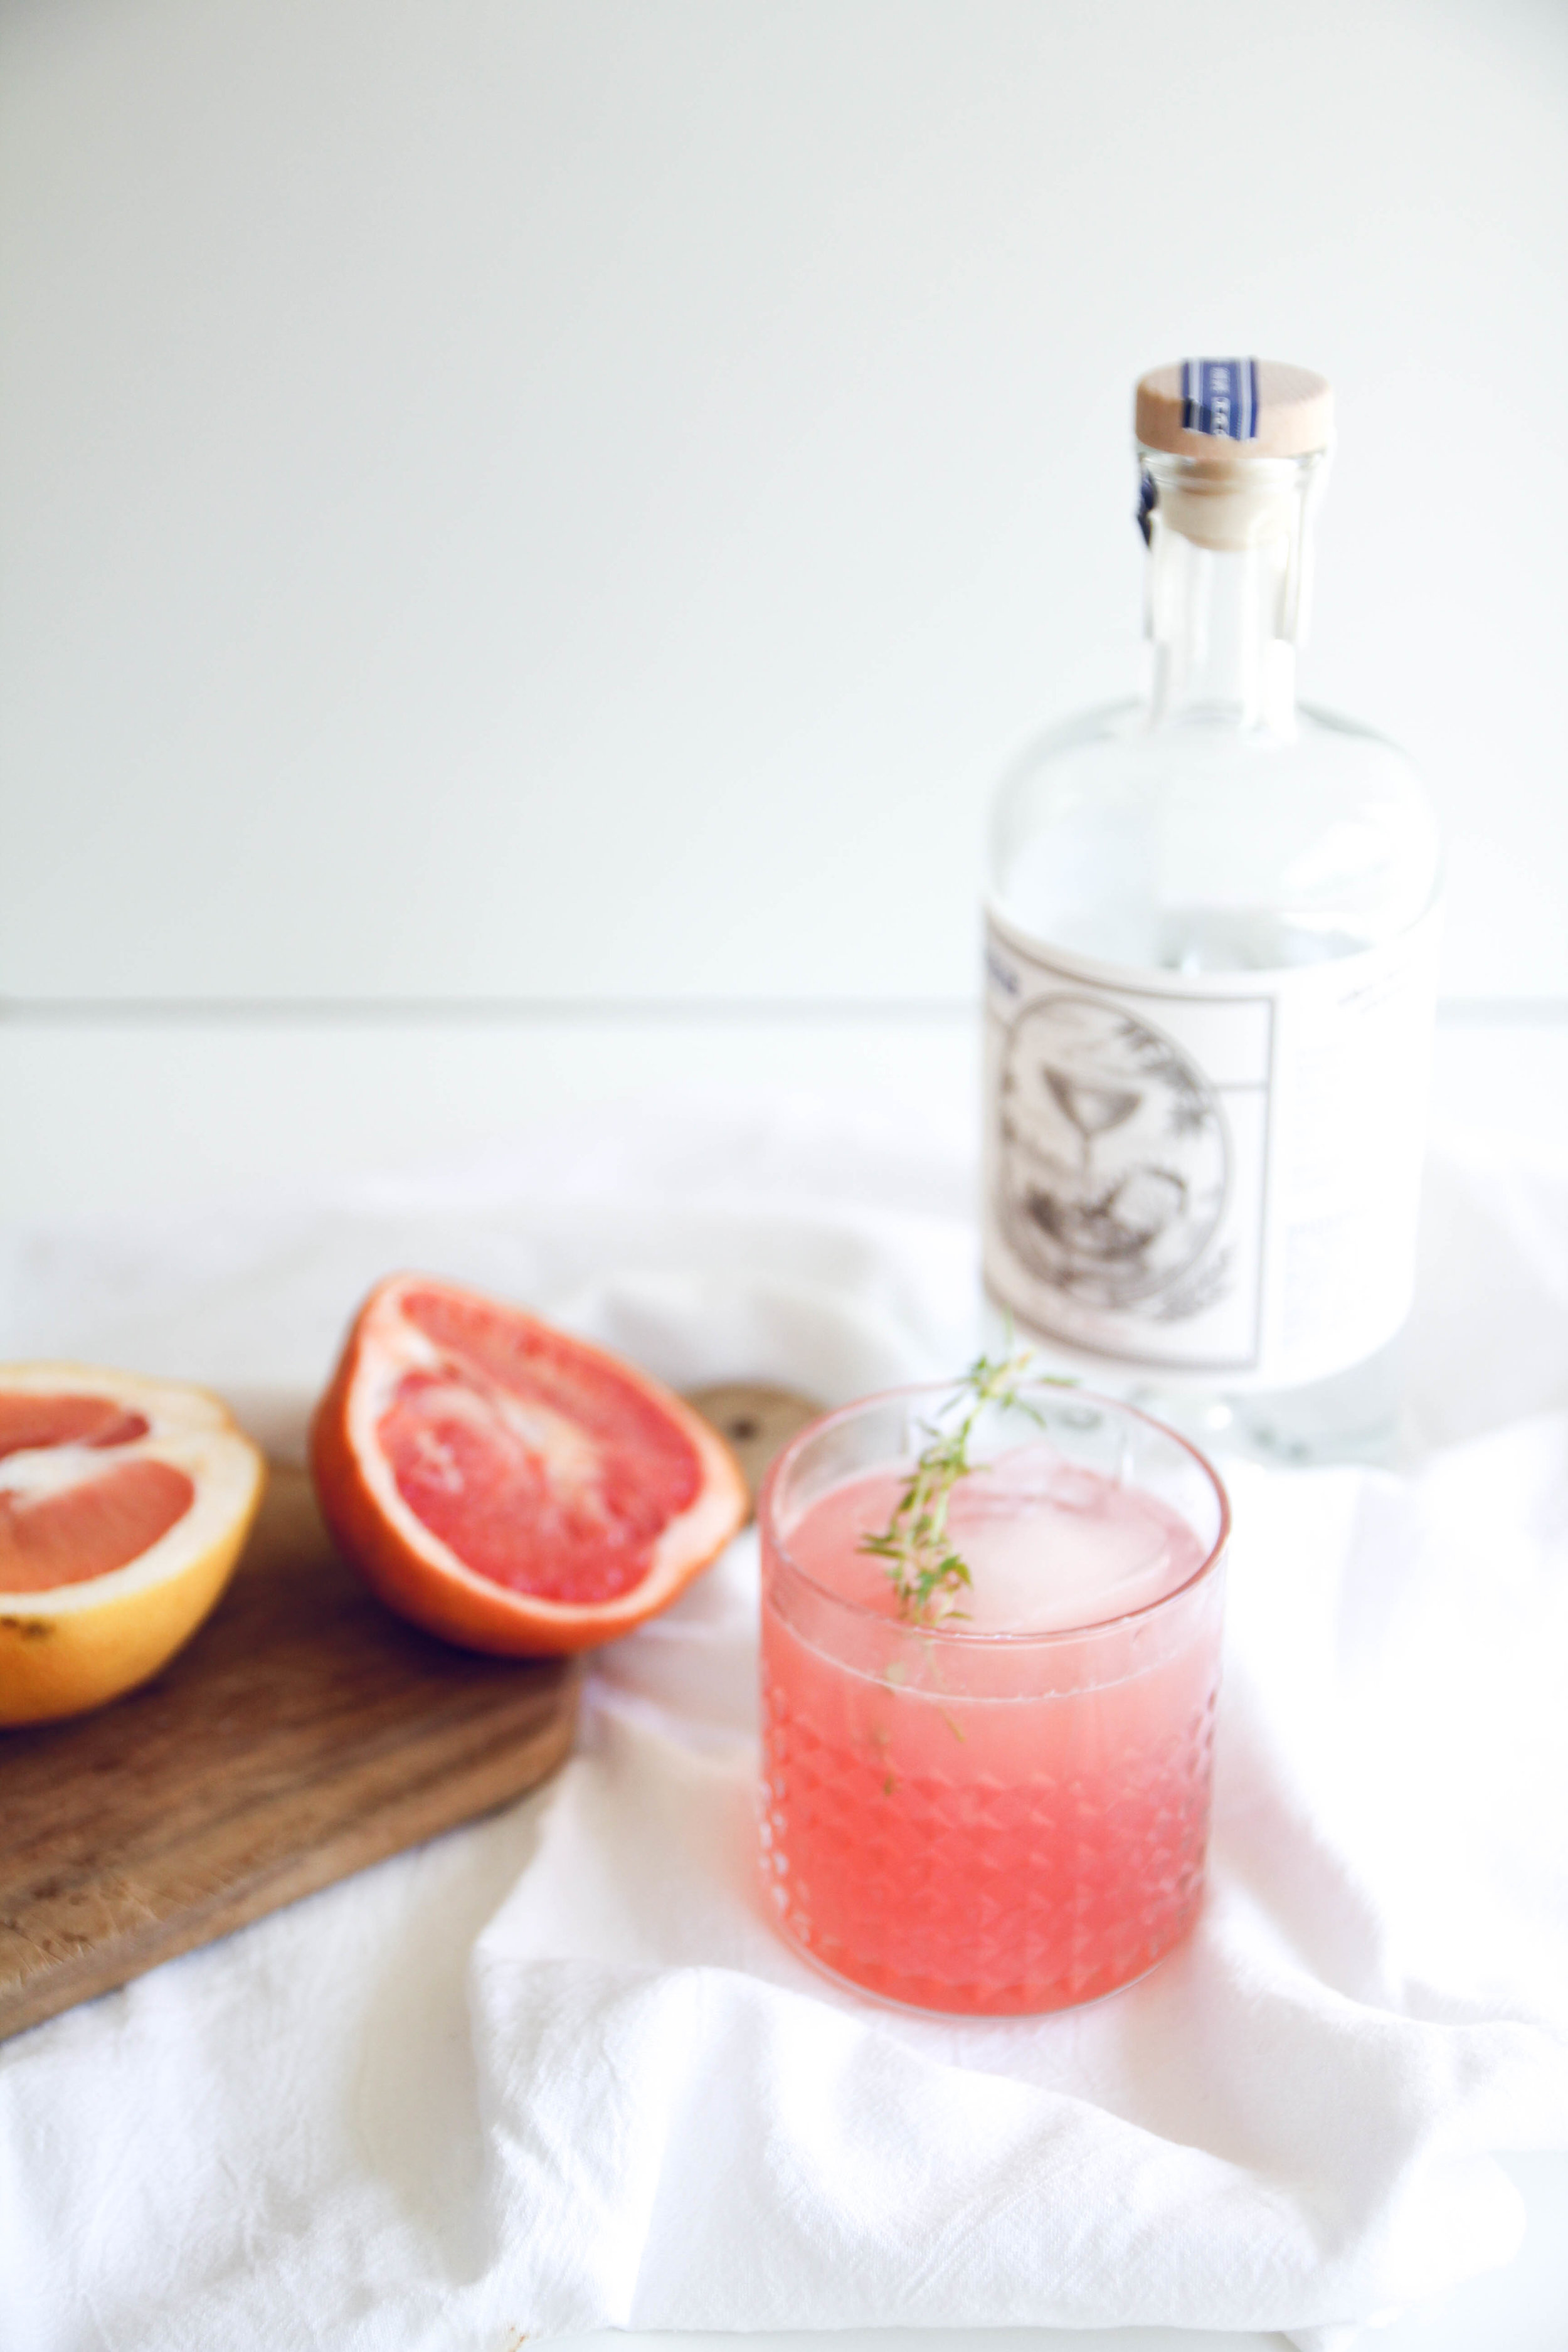 Gin and fresh grapefruit summer cocktail